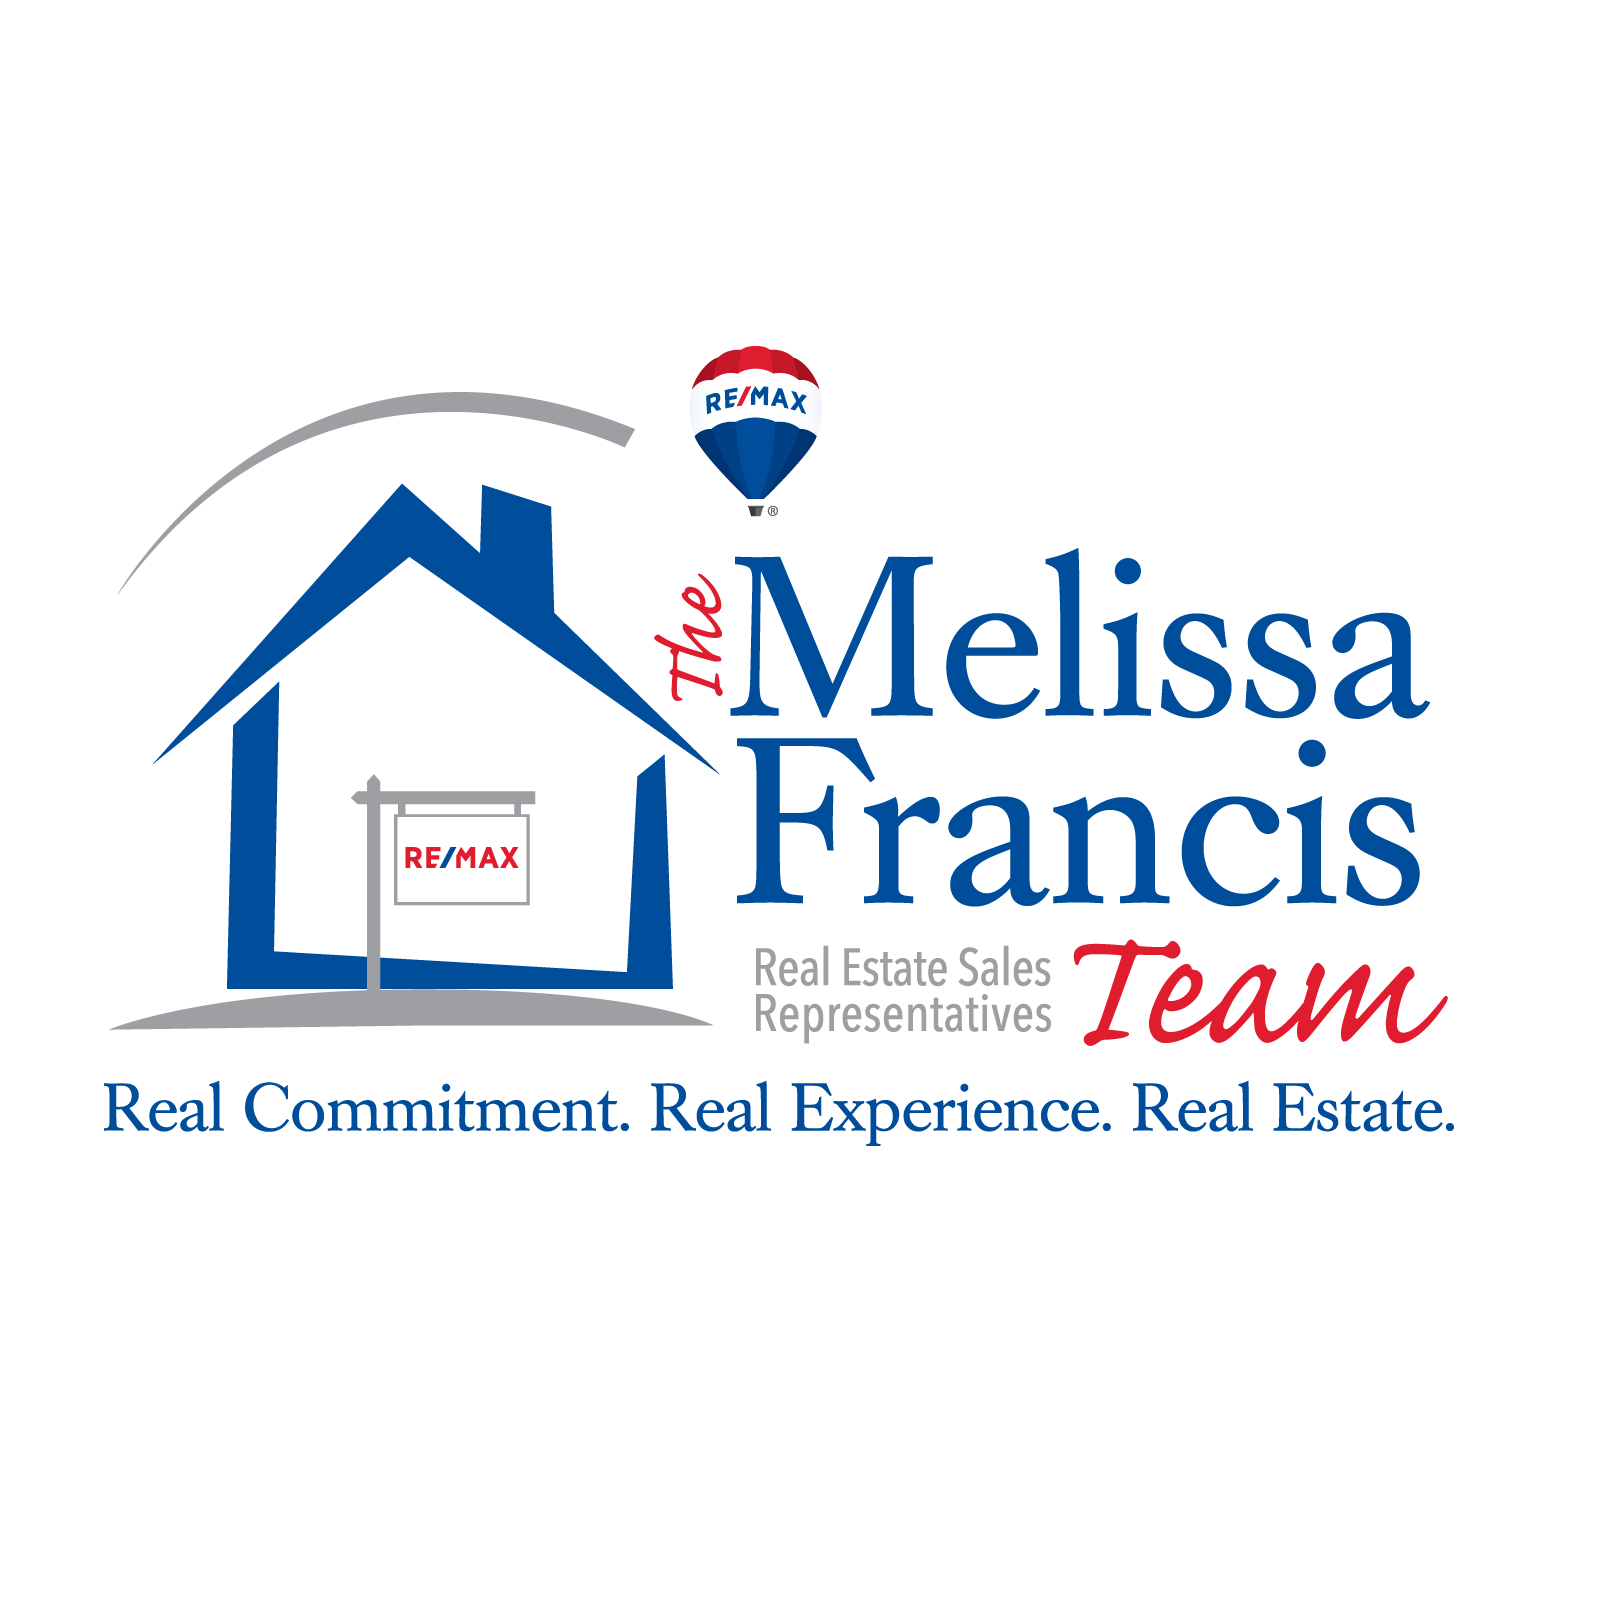 The Melissa Francis Team logo